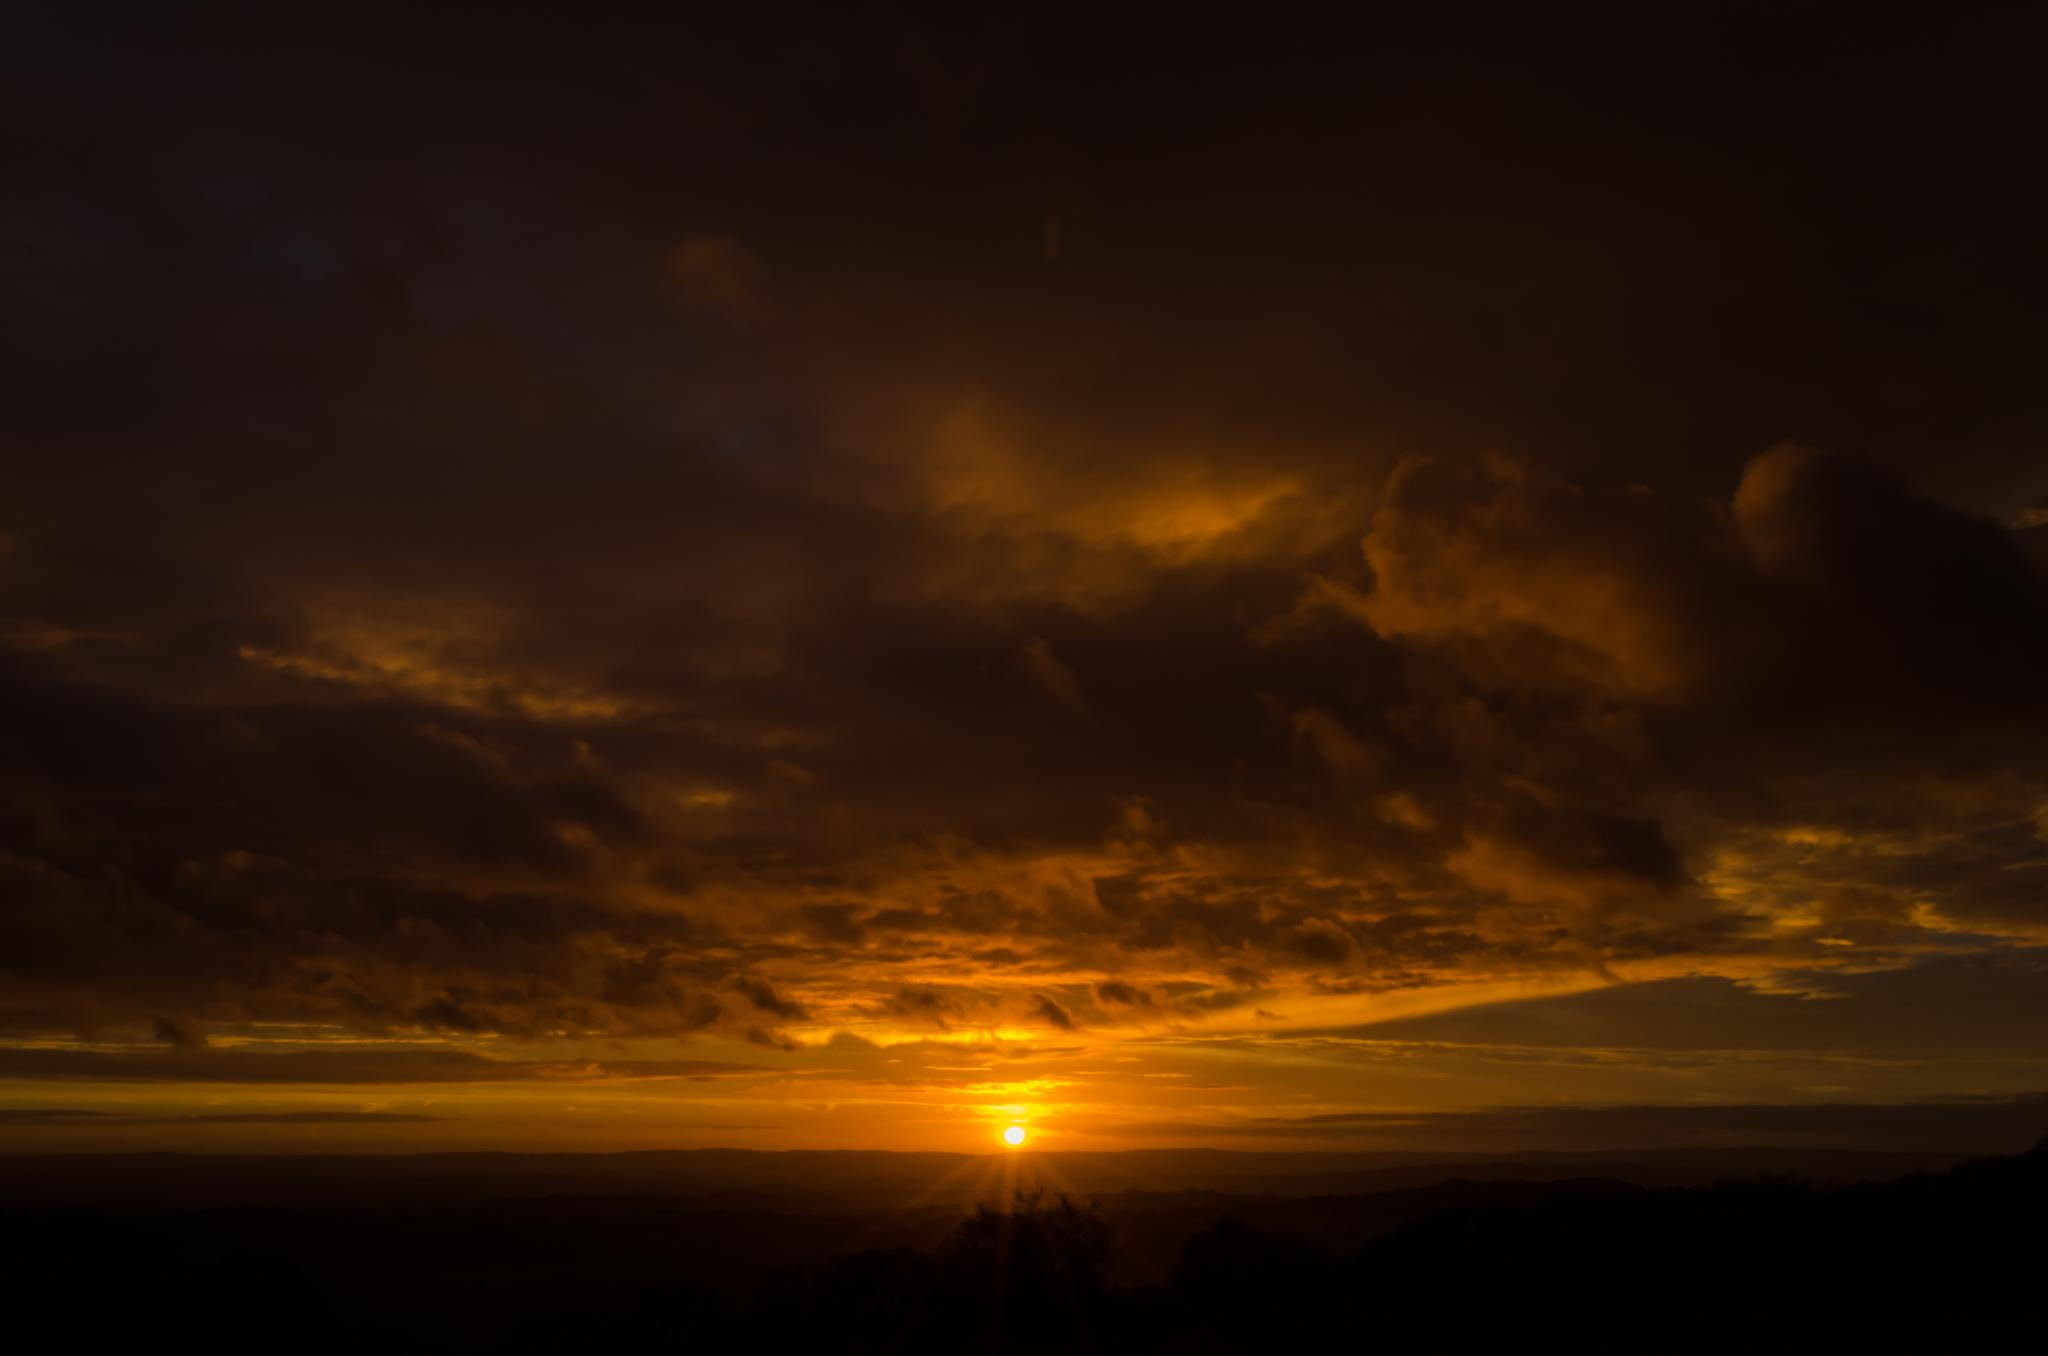 Dawn from the top of the Derry by Adam Colegate